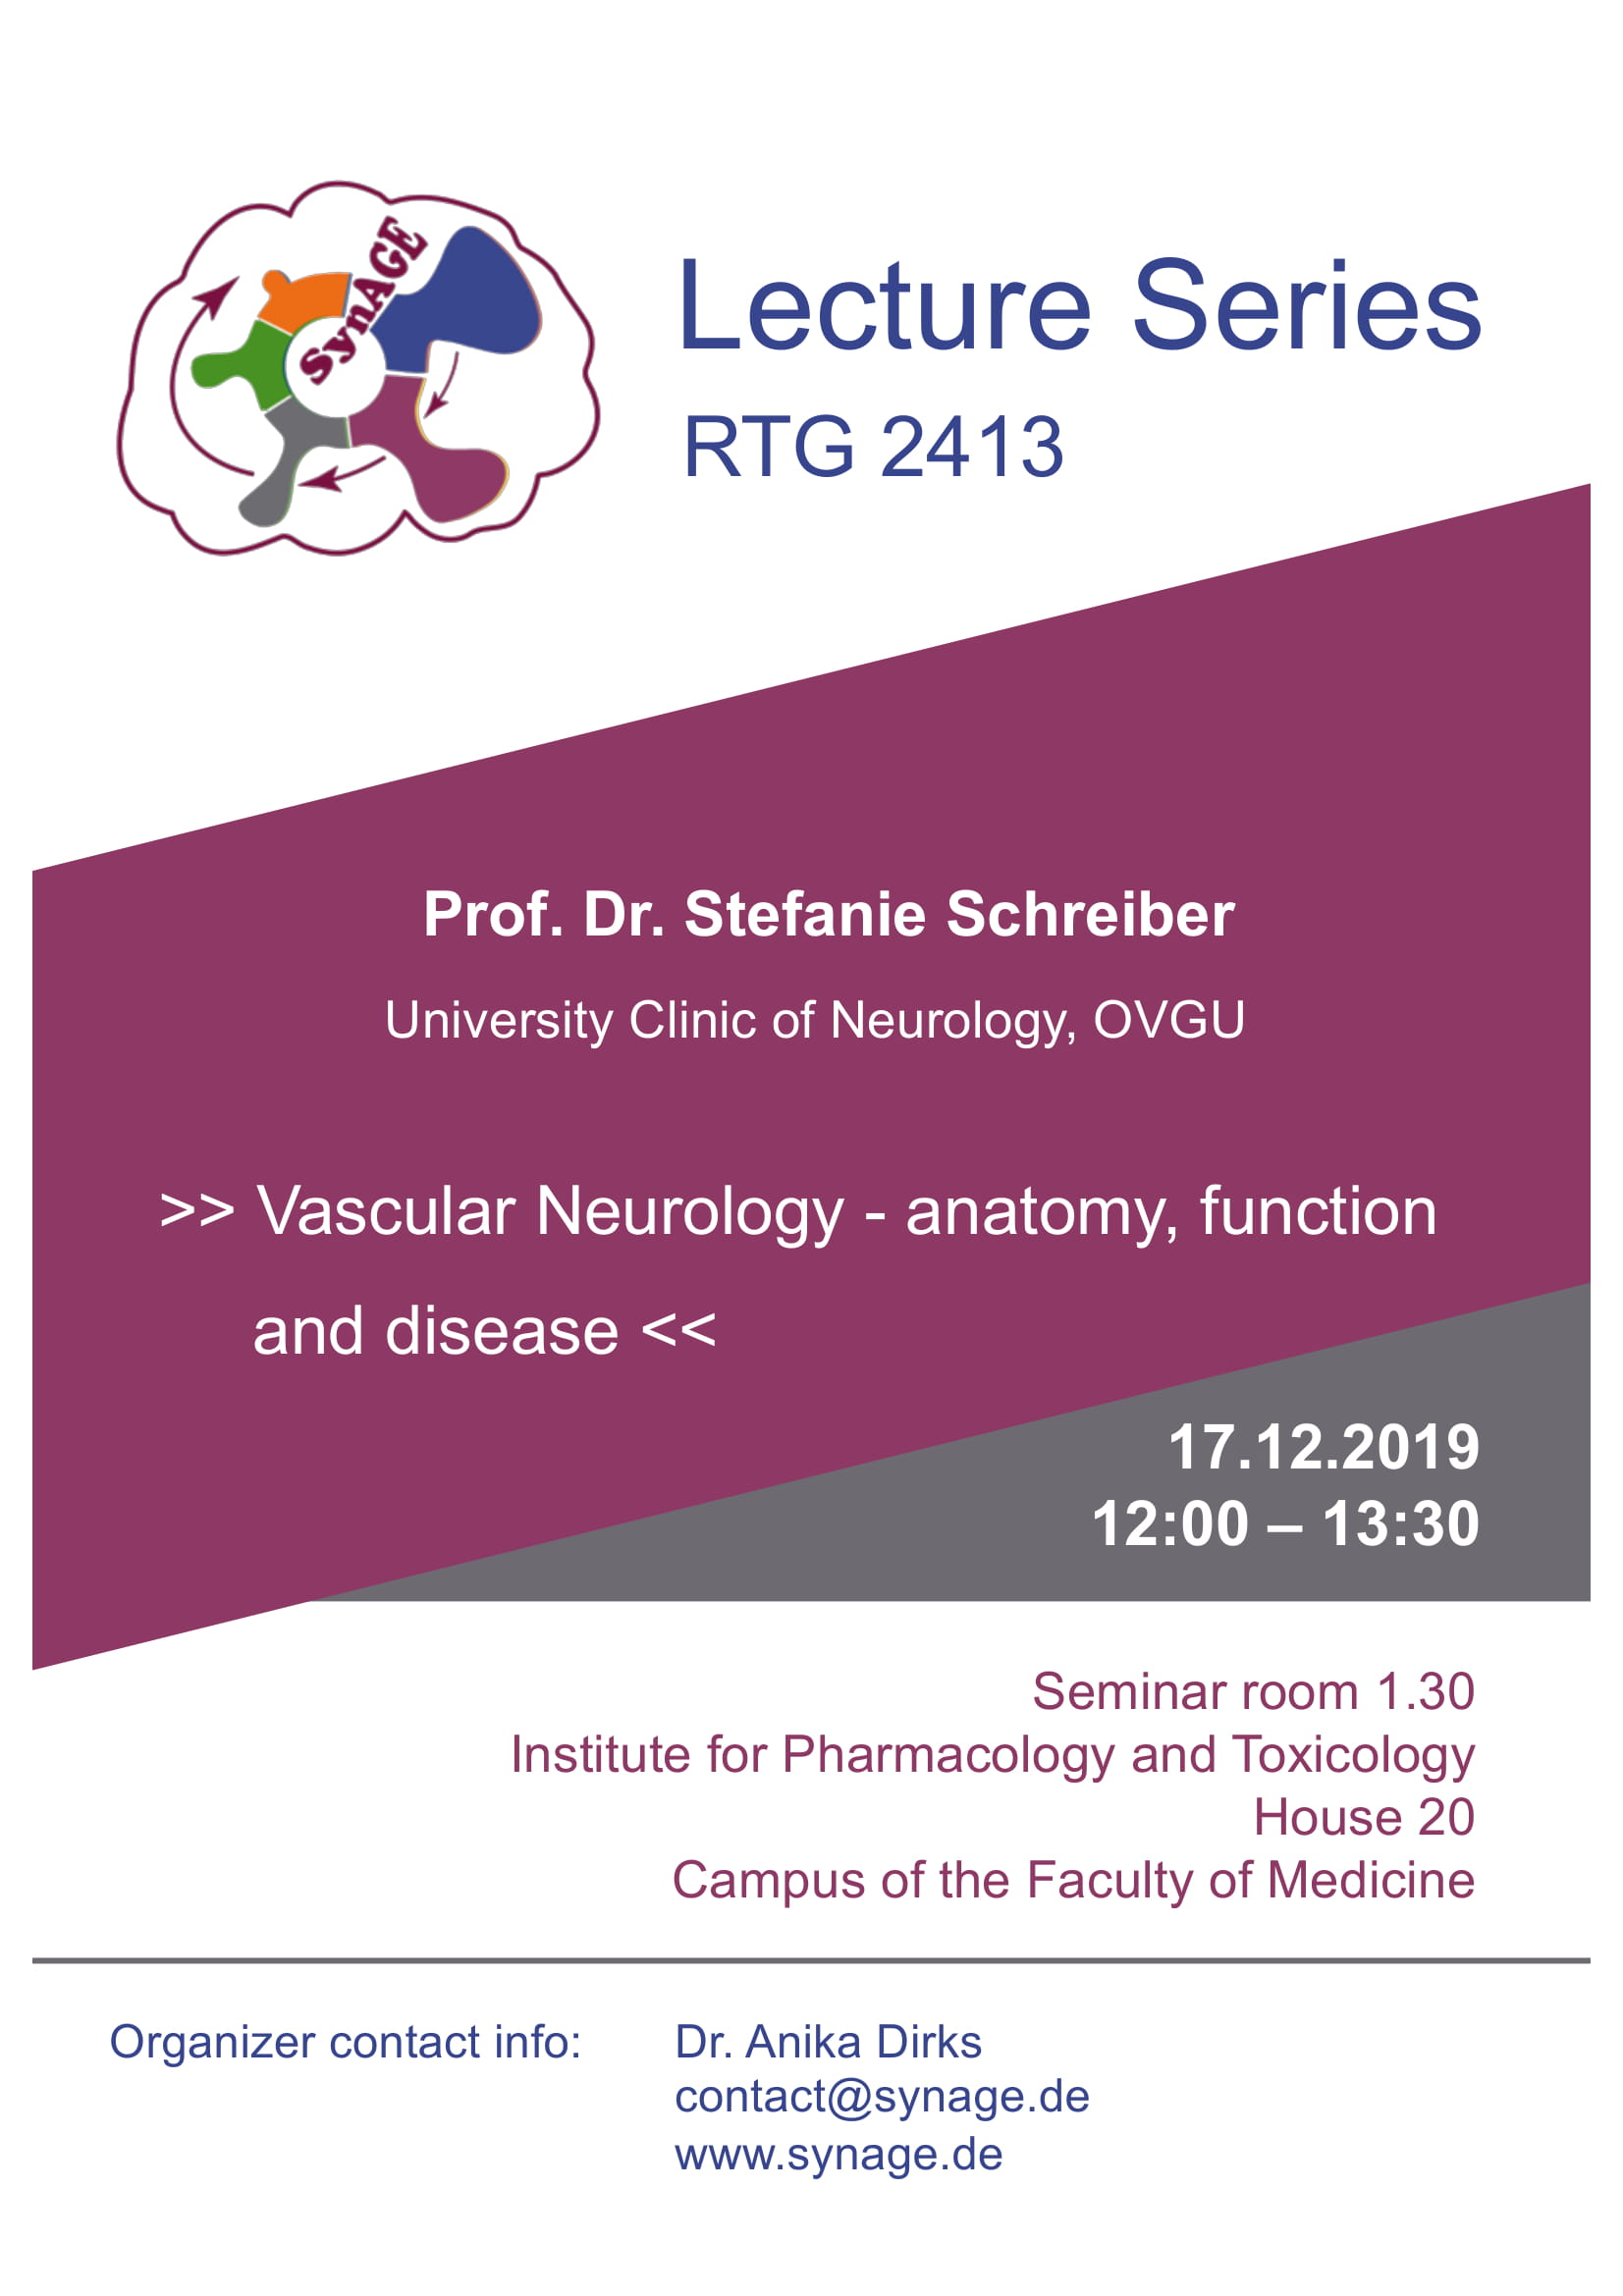 RTG 2413 SynAGE Lecture: Vascular Neurology - anatomy, function and disease @ Institute of Pharmacology and Toxicology, House 20, Seminarroom 1.30